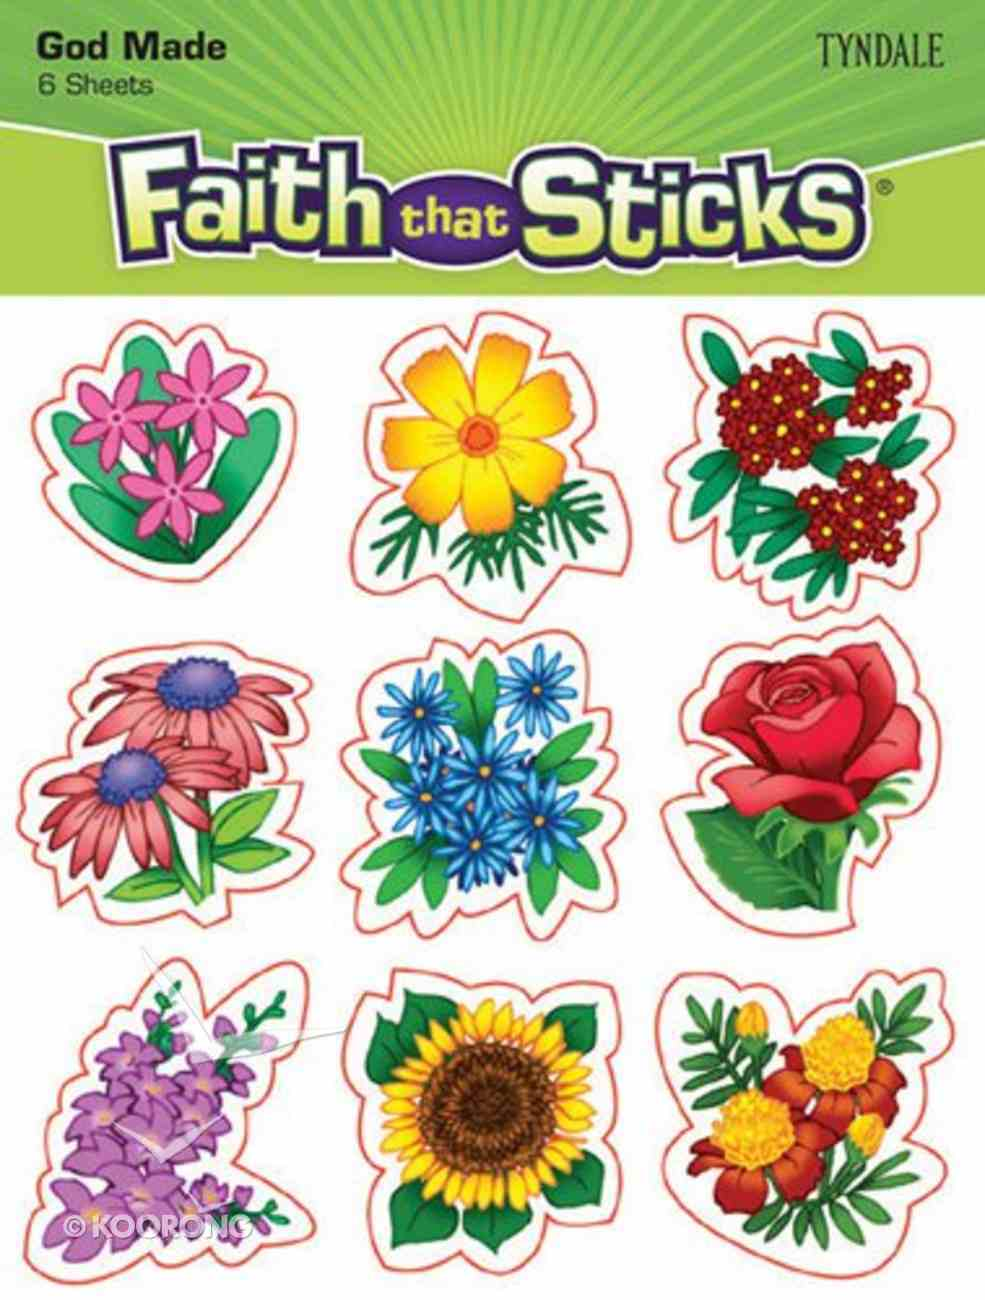 God Made Flowers (6 Sheets, 54 Stickers) (Stickers Faith That Sticks Series) Stickers